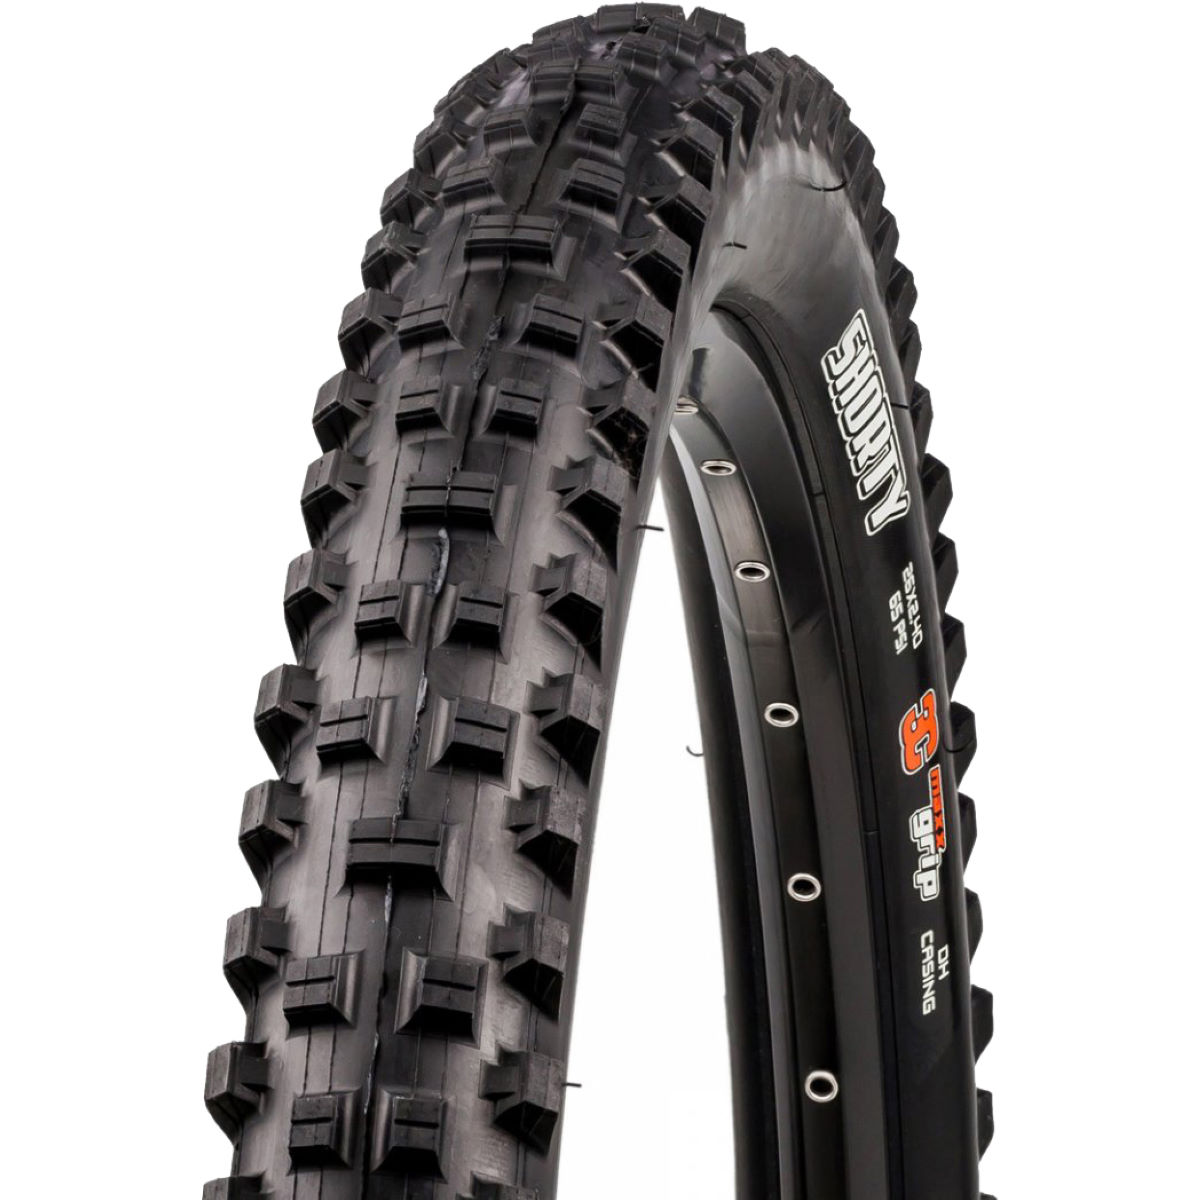 Pneu VTT Maxxis Shorty Wired - 2.4' 27.5' Noir Pneus